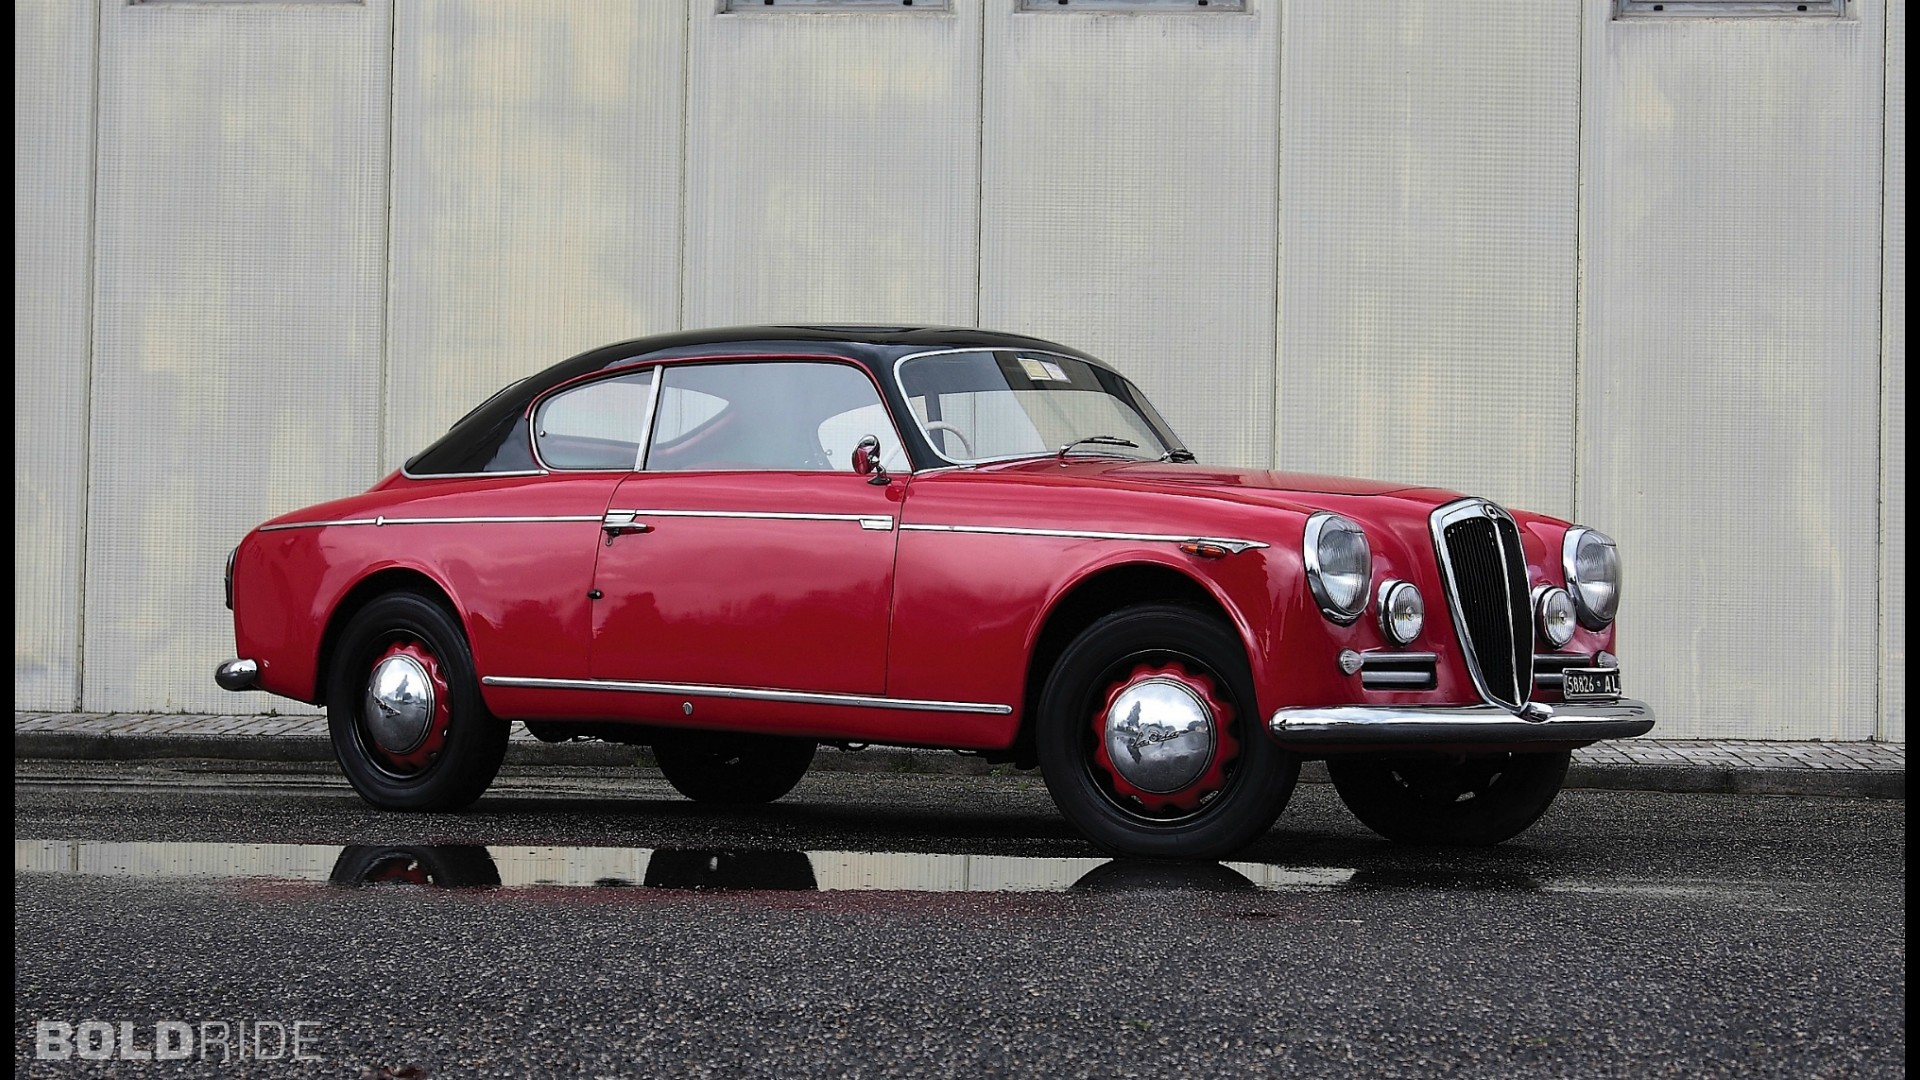 https://icdn-1.motor1.com/images/mgl/NxwPY/s1/lancia-aurelia-b20-coupe.jpg